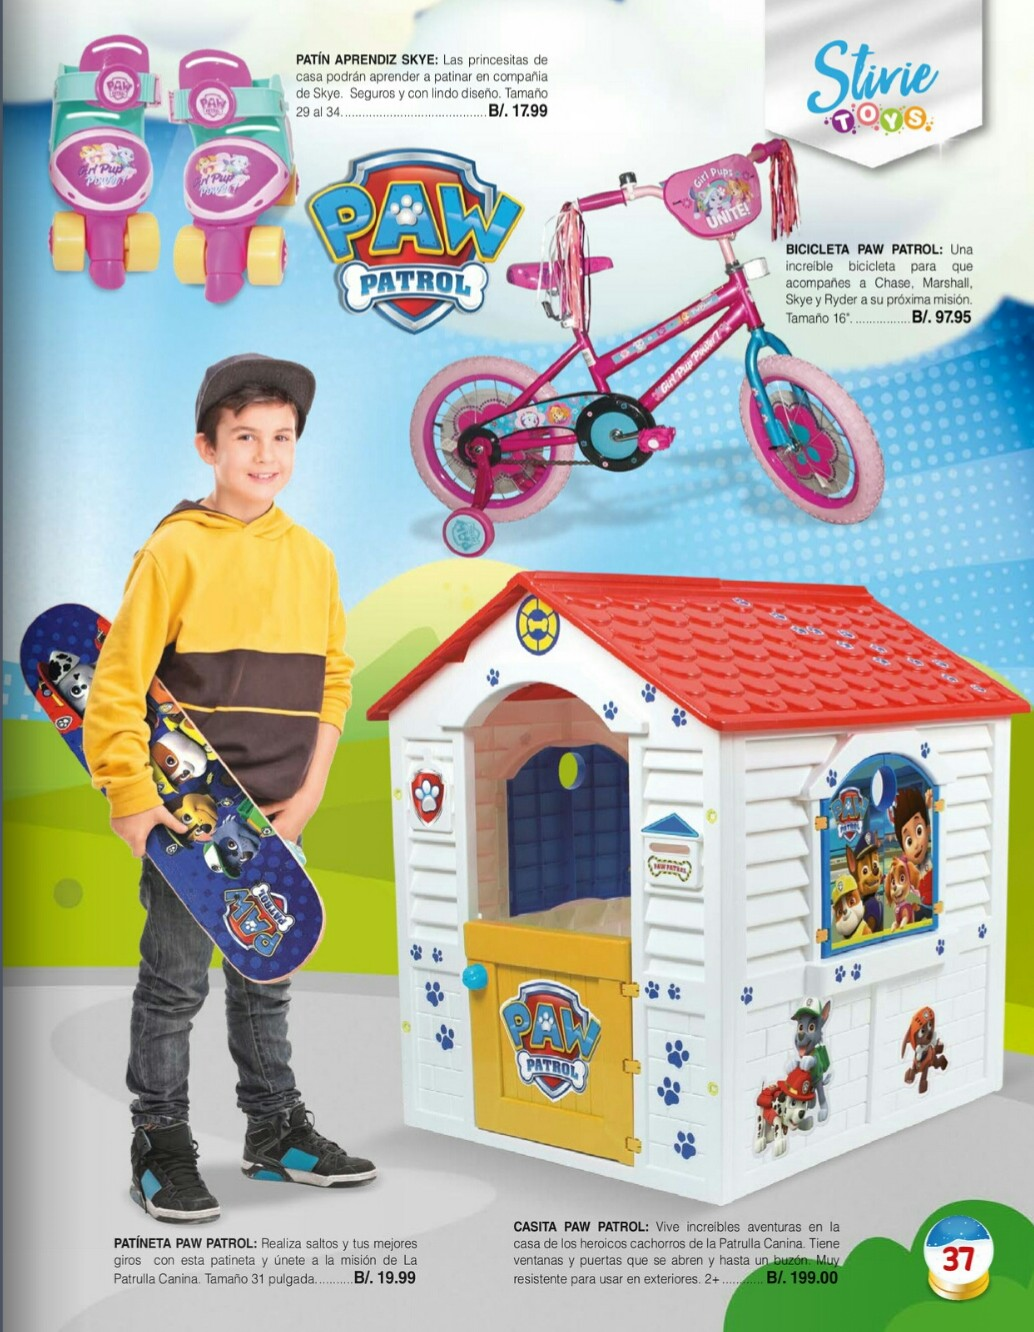 Catalogo juguetes Stivie toys 2018 p37